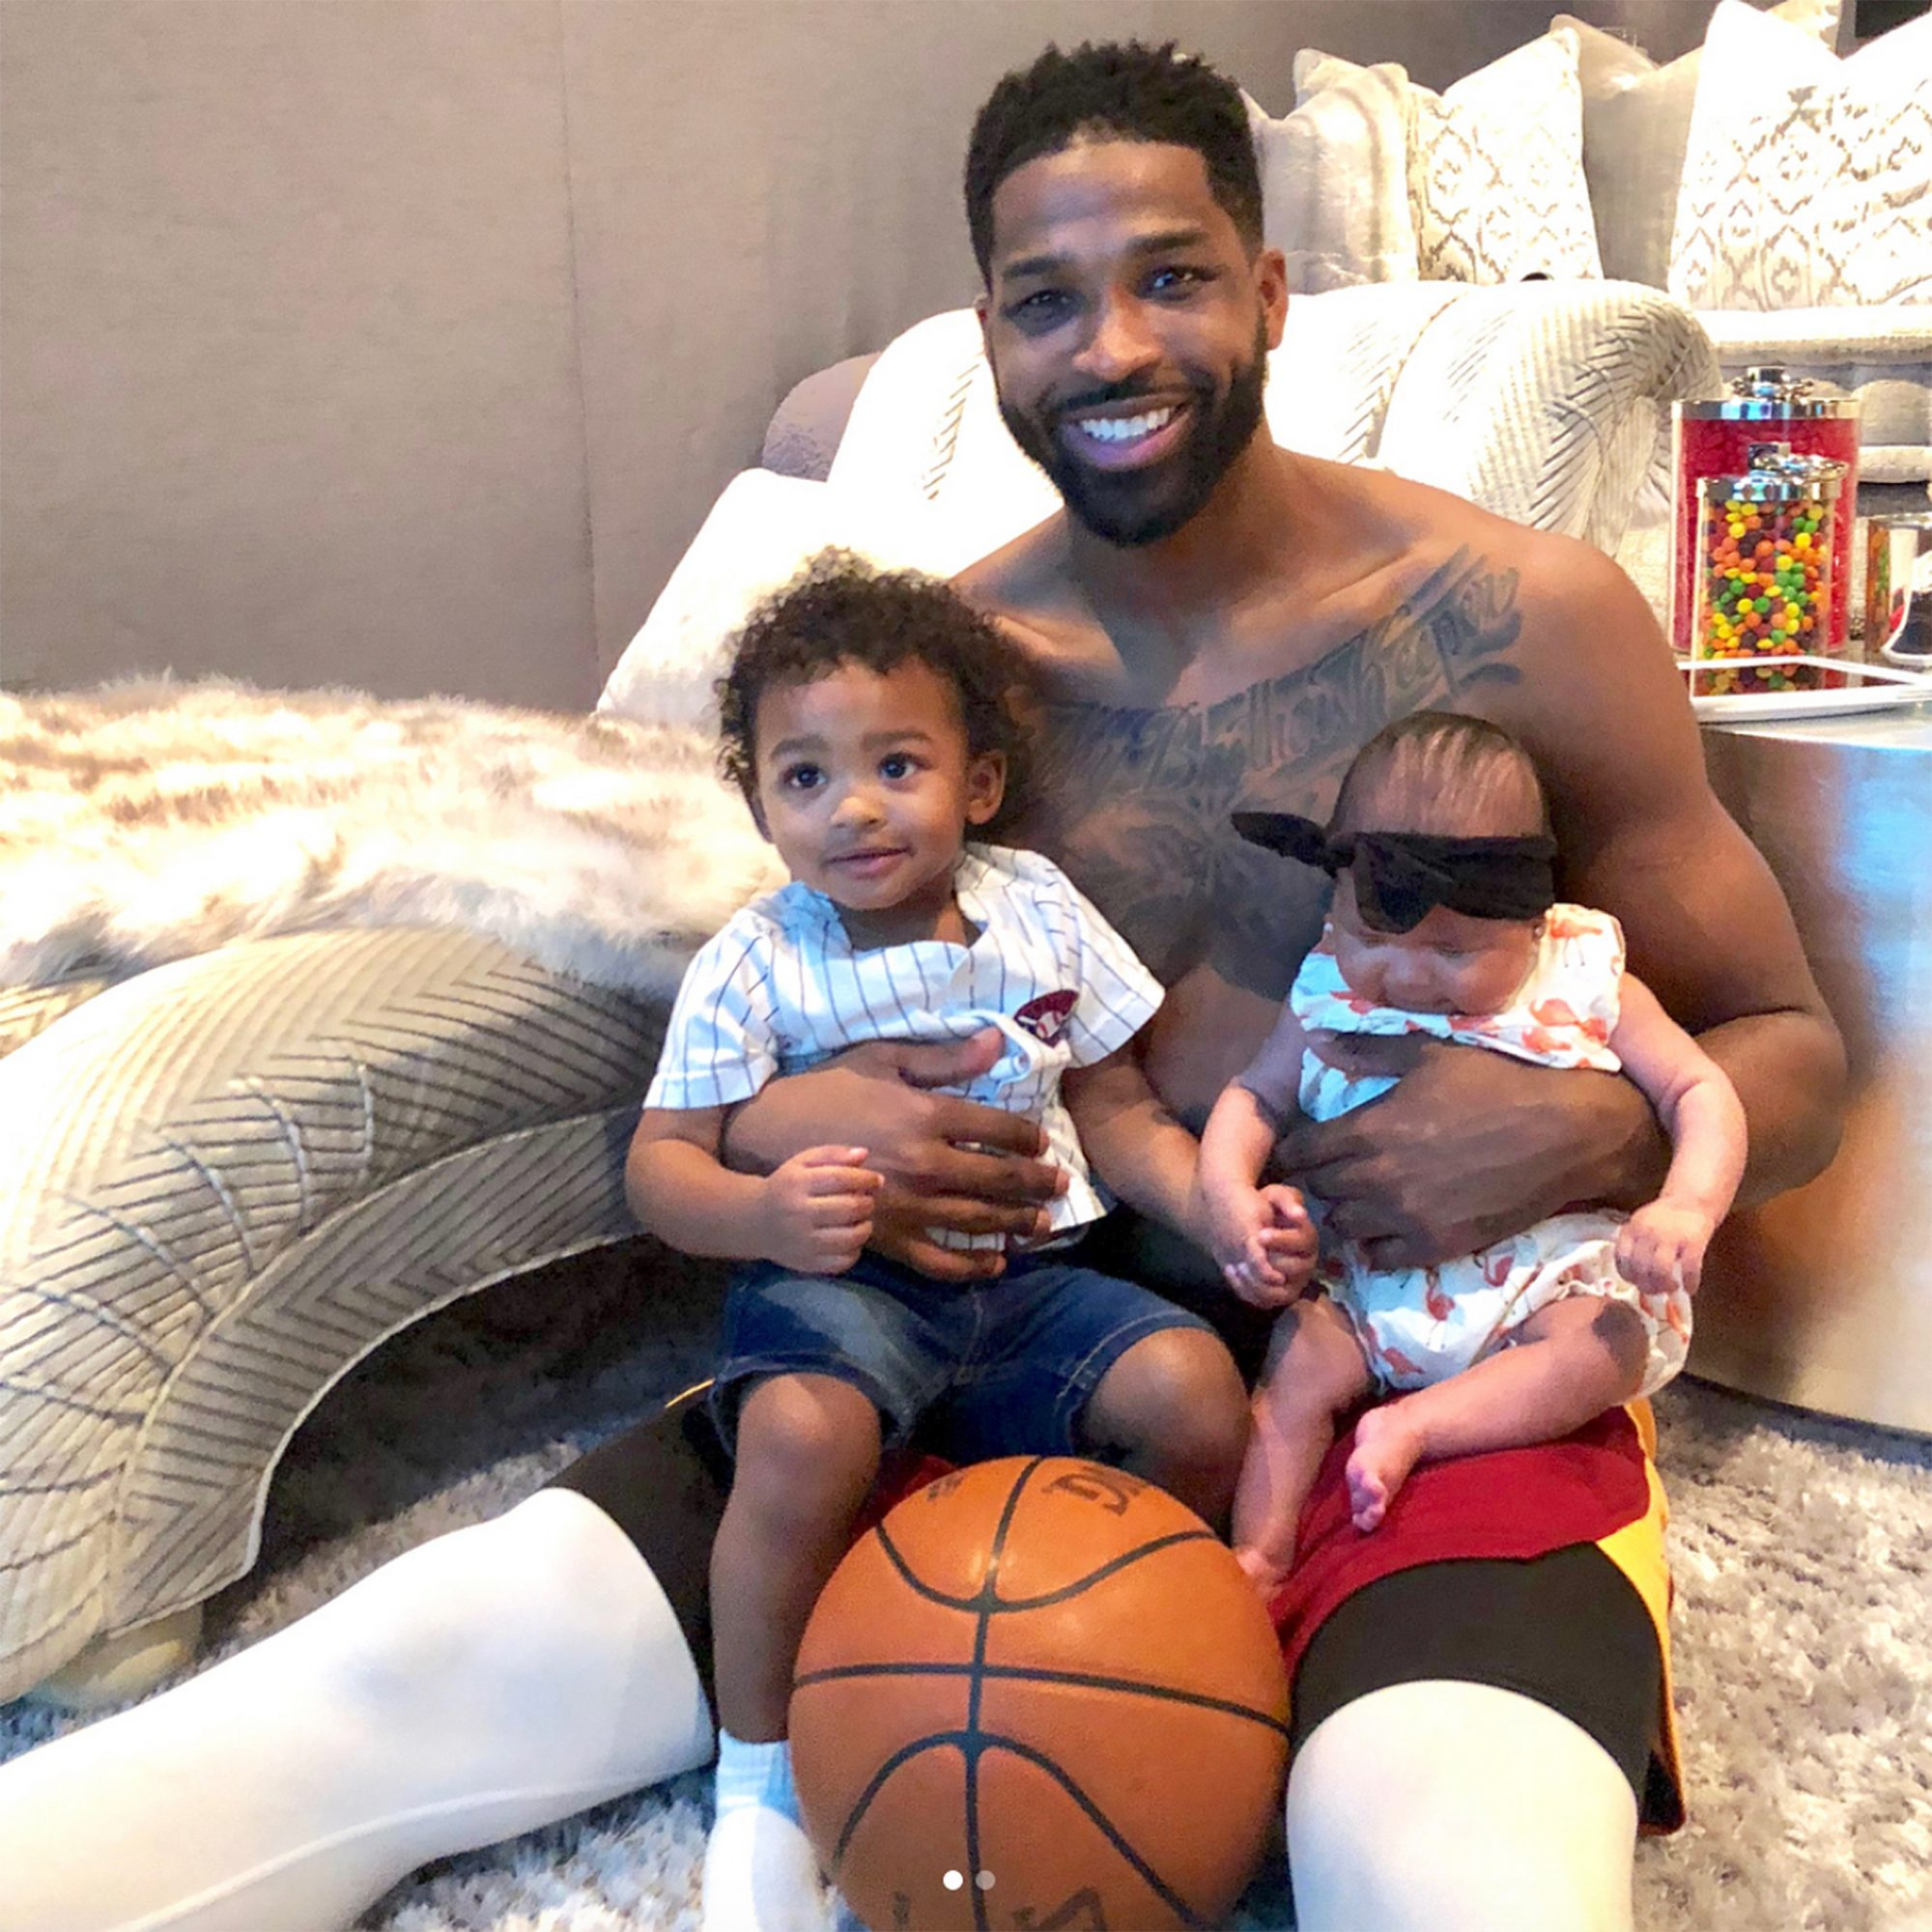 Tristan Thompson Shares First Photos of Son Prince and Daughter True | PEOPLE.com